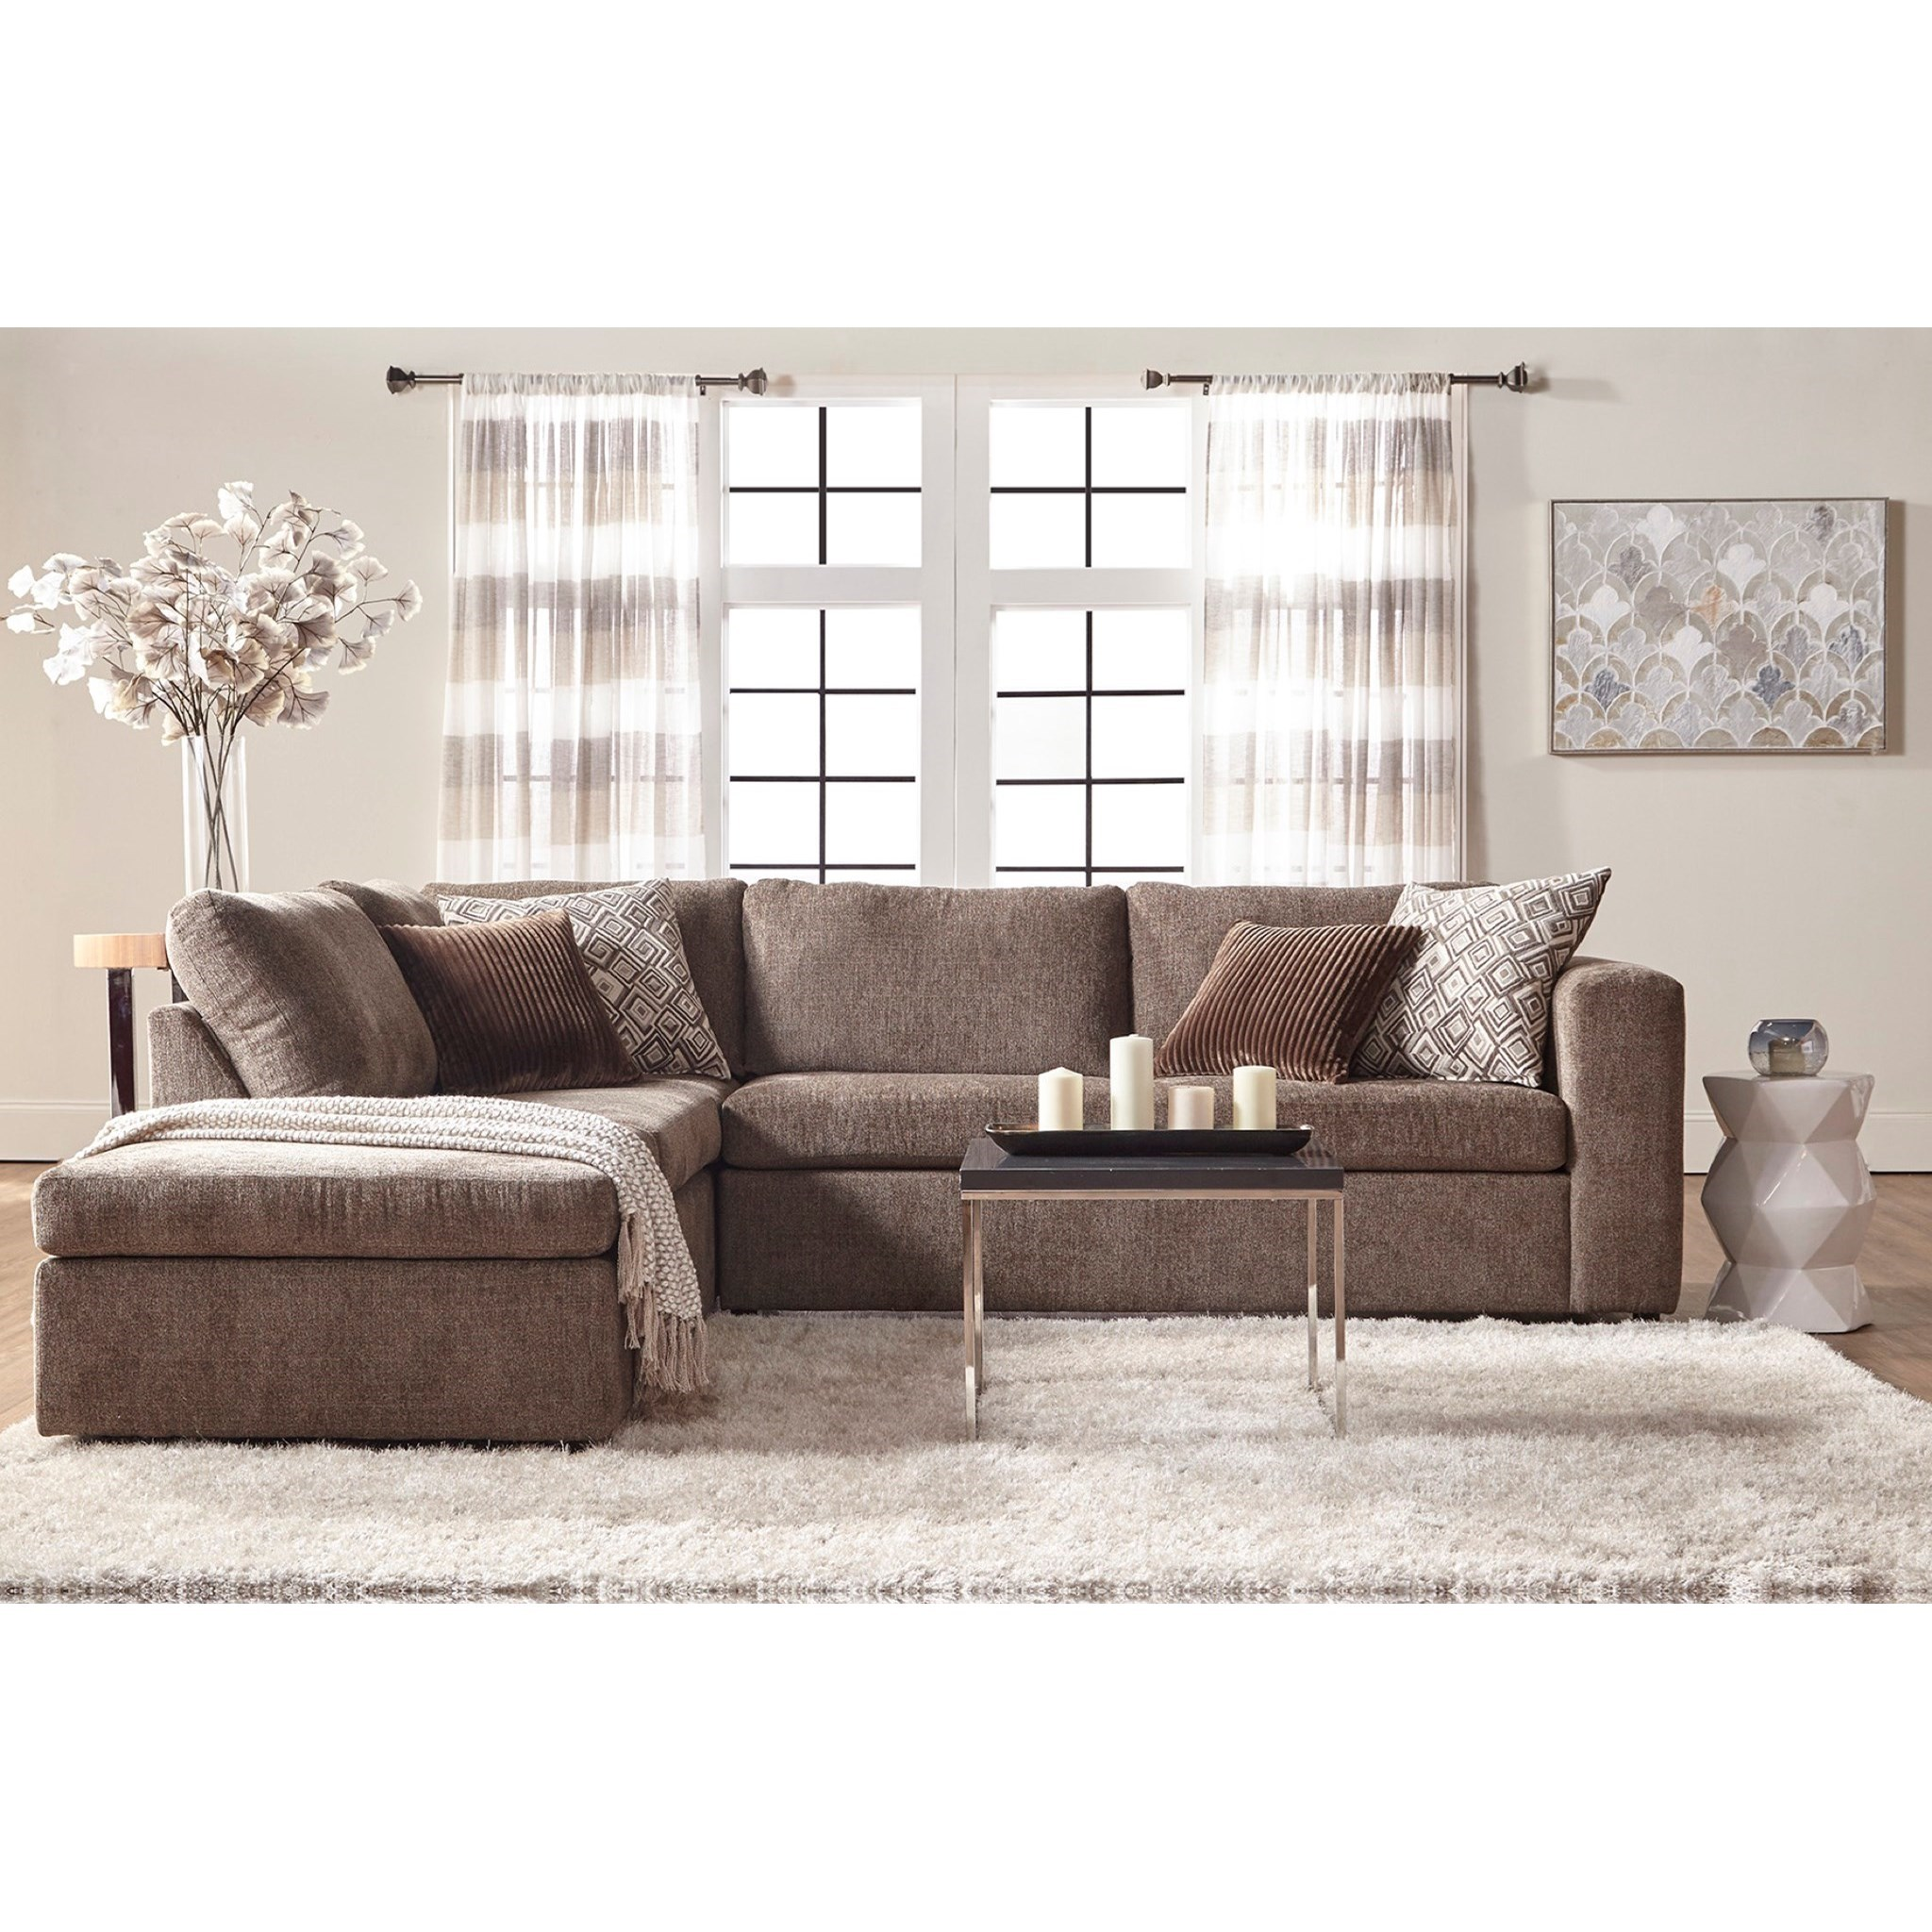 Serta Upholstery Angora Sectional Sofa with Chaise - Item Number 1100-LFCHS+RFS  sc 1 st  Rotmans : serta upholstery sectional - Sectionals, Sofas & Couches